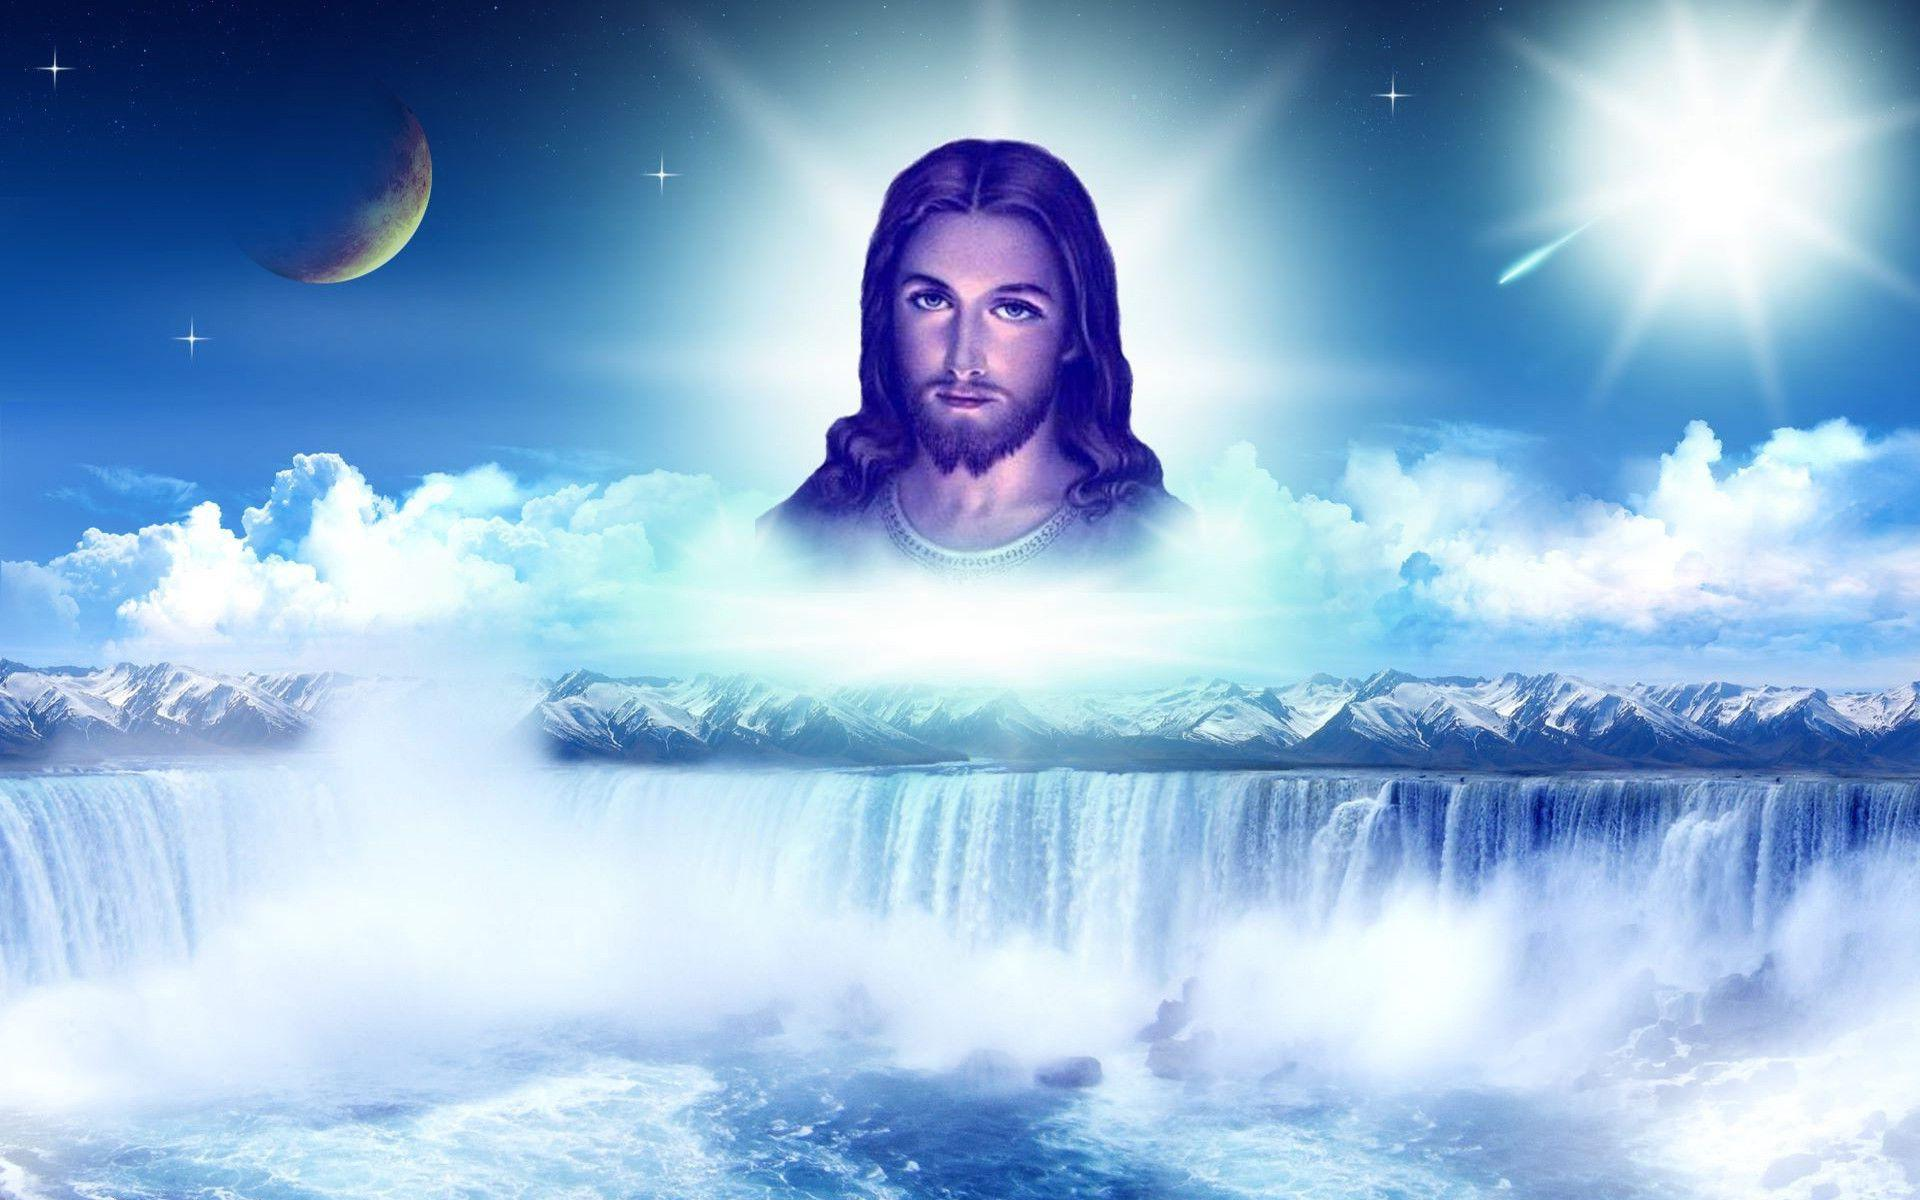 Jesus Christ Wallpaper Hd Best Wallpapers For Desktop